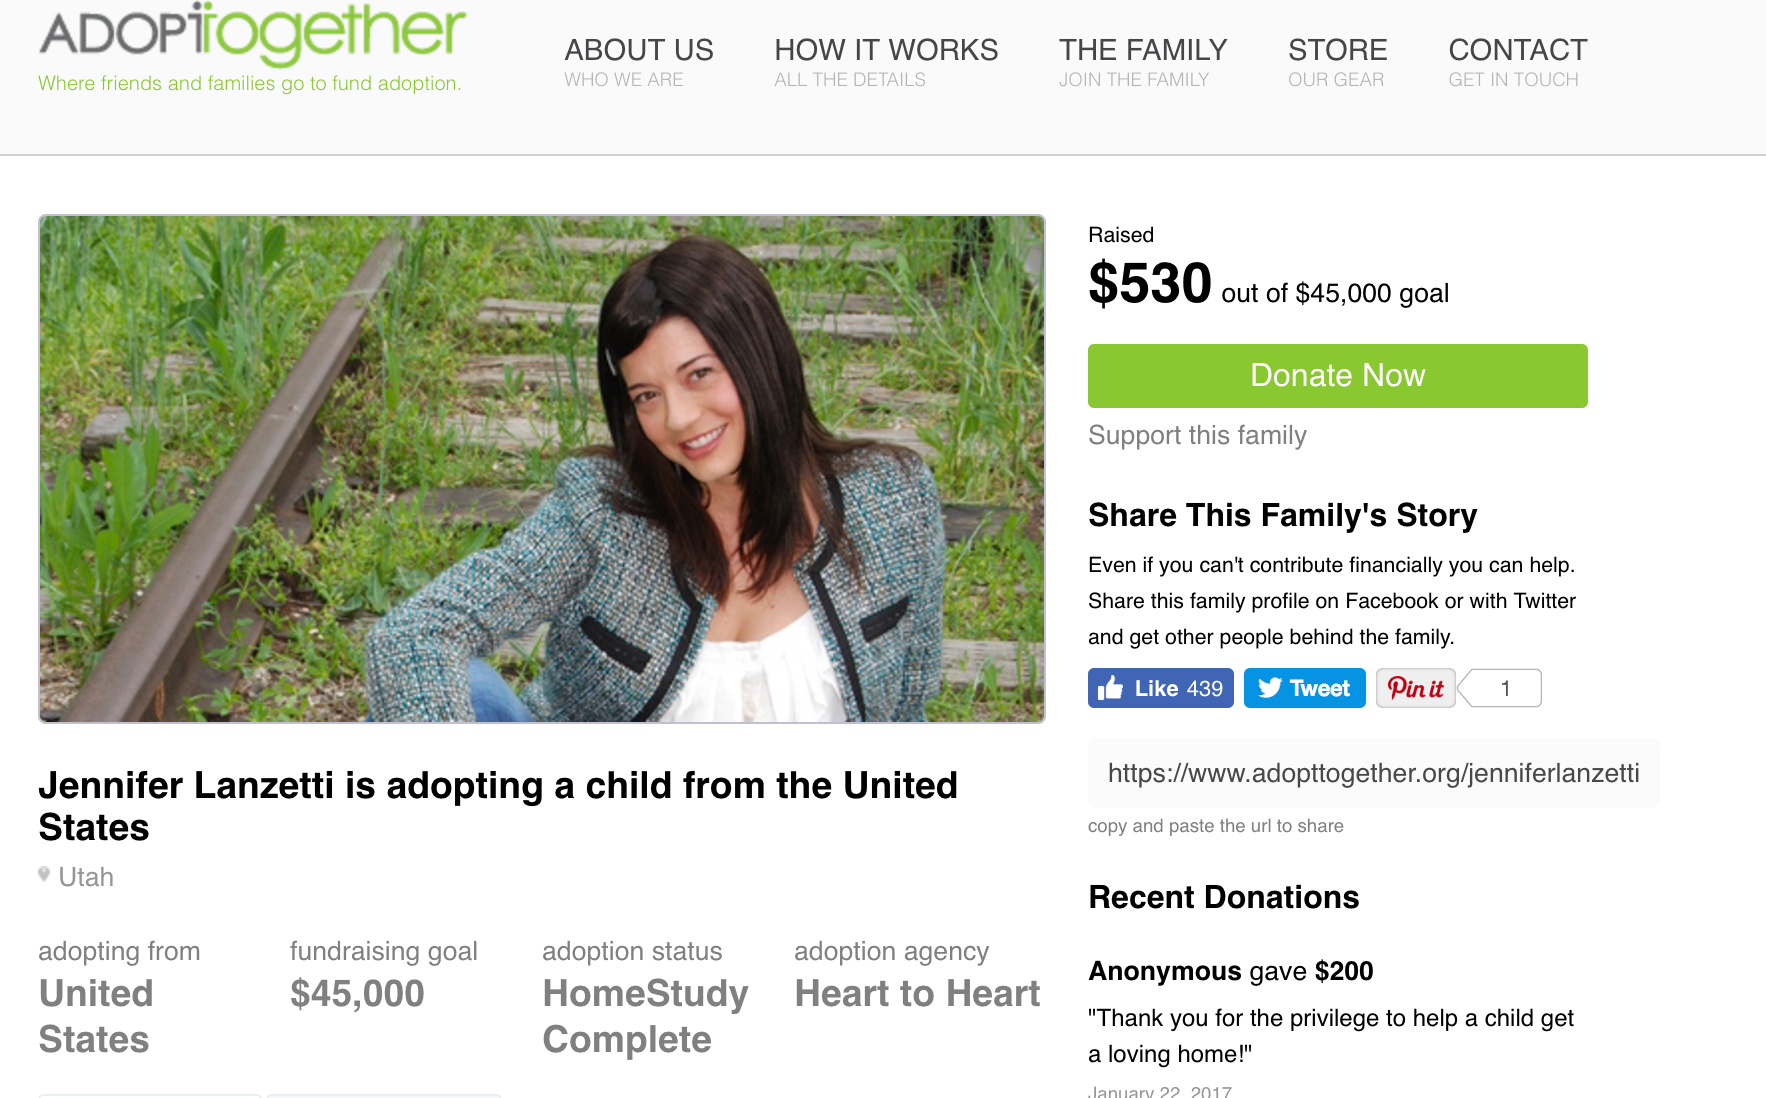 Jennifer_Lanzetti_Adoption_Fundraising_-_AdoptTogether.png